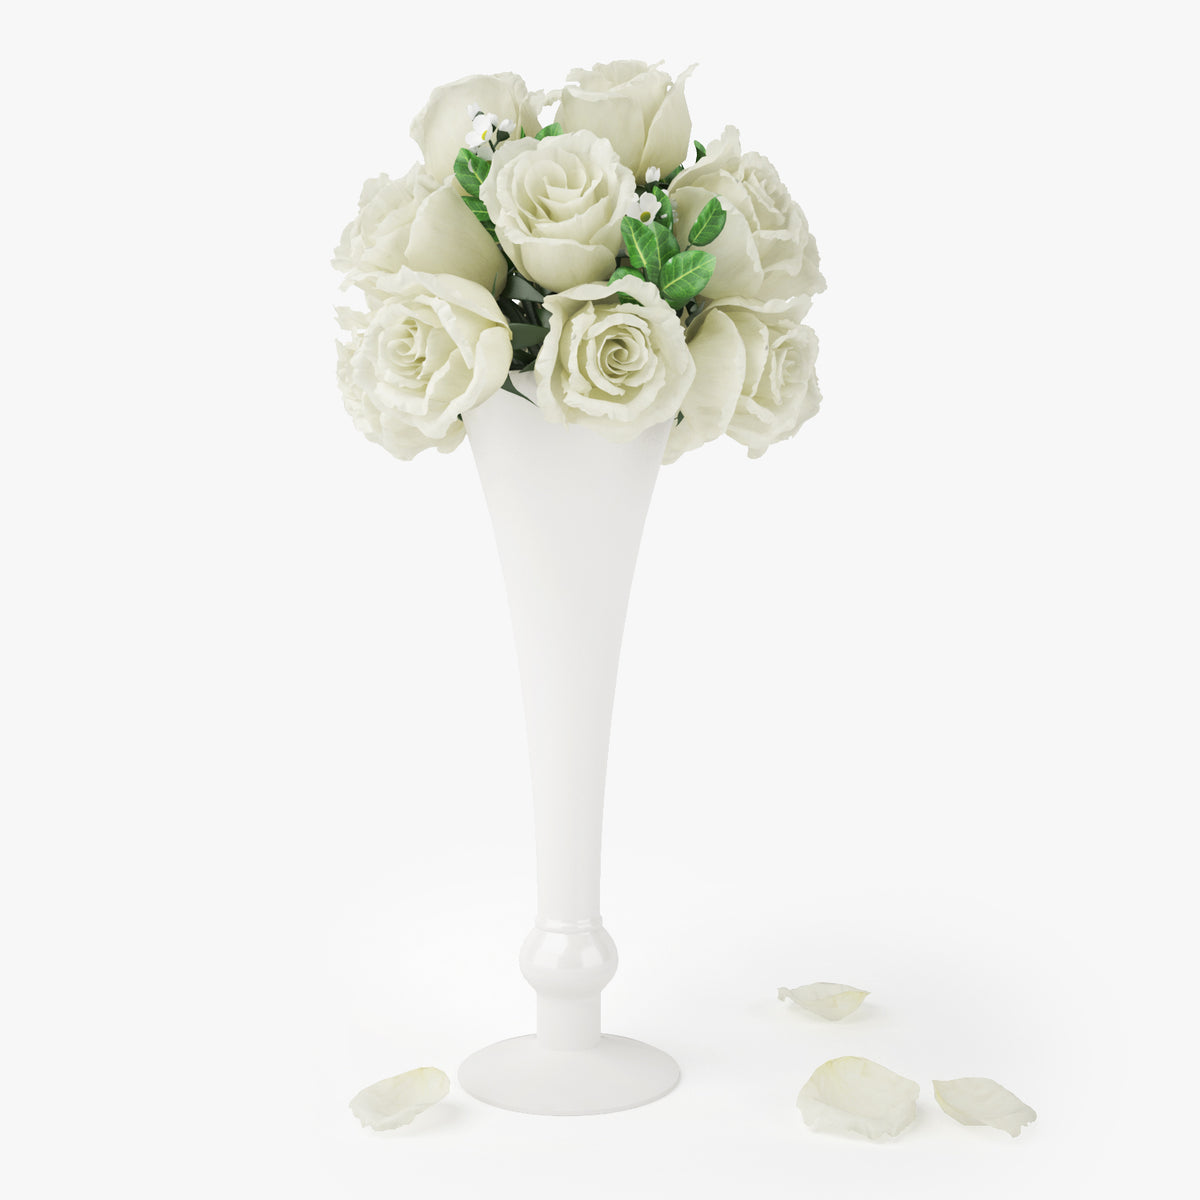 FREE Rose Bouquets Flowers in Vase 3D Model